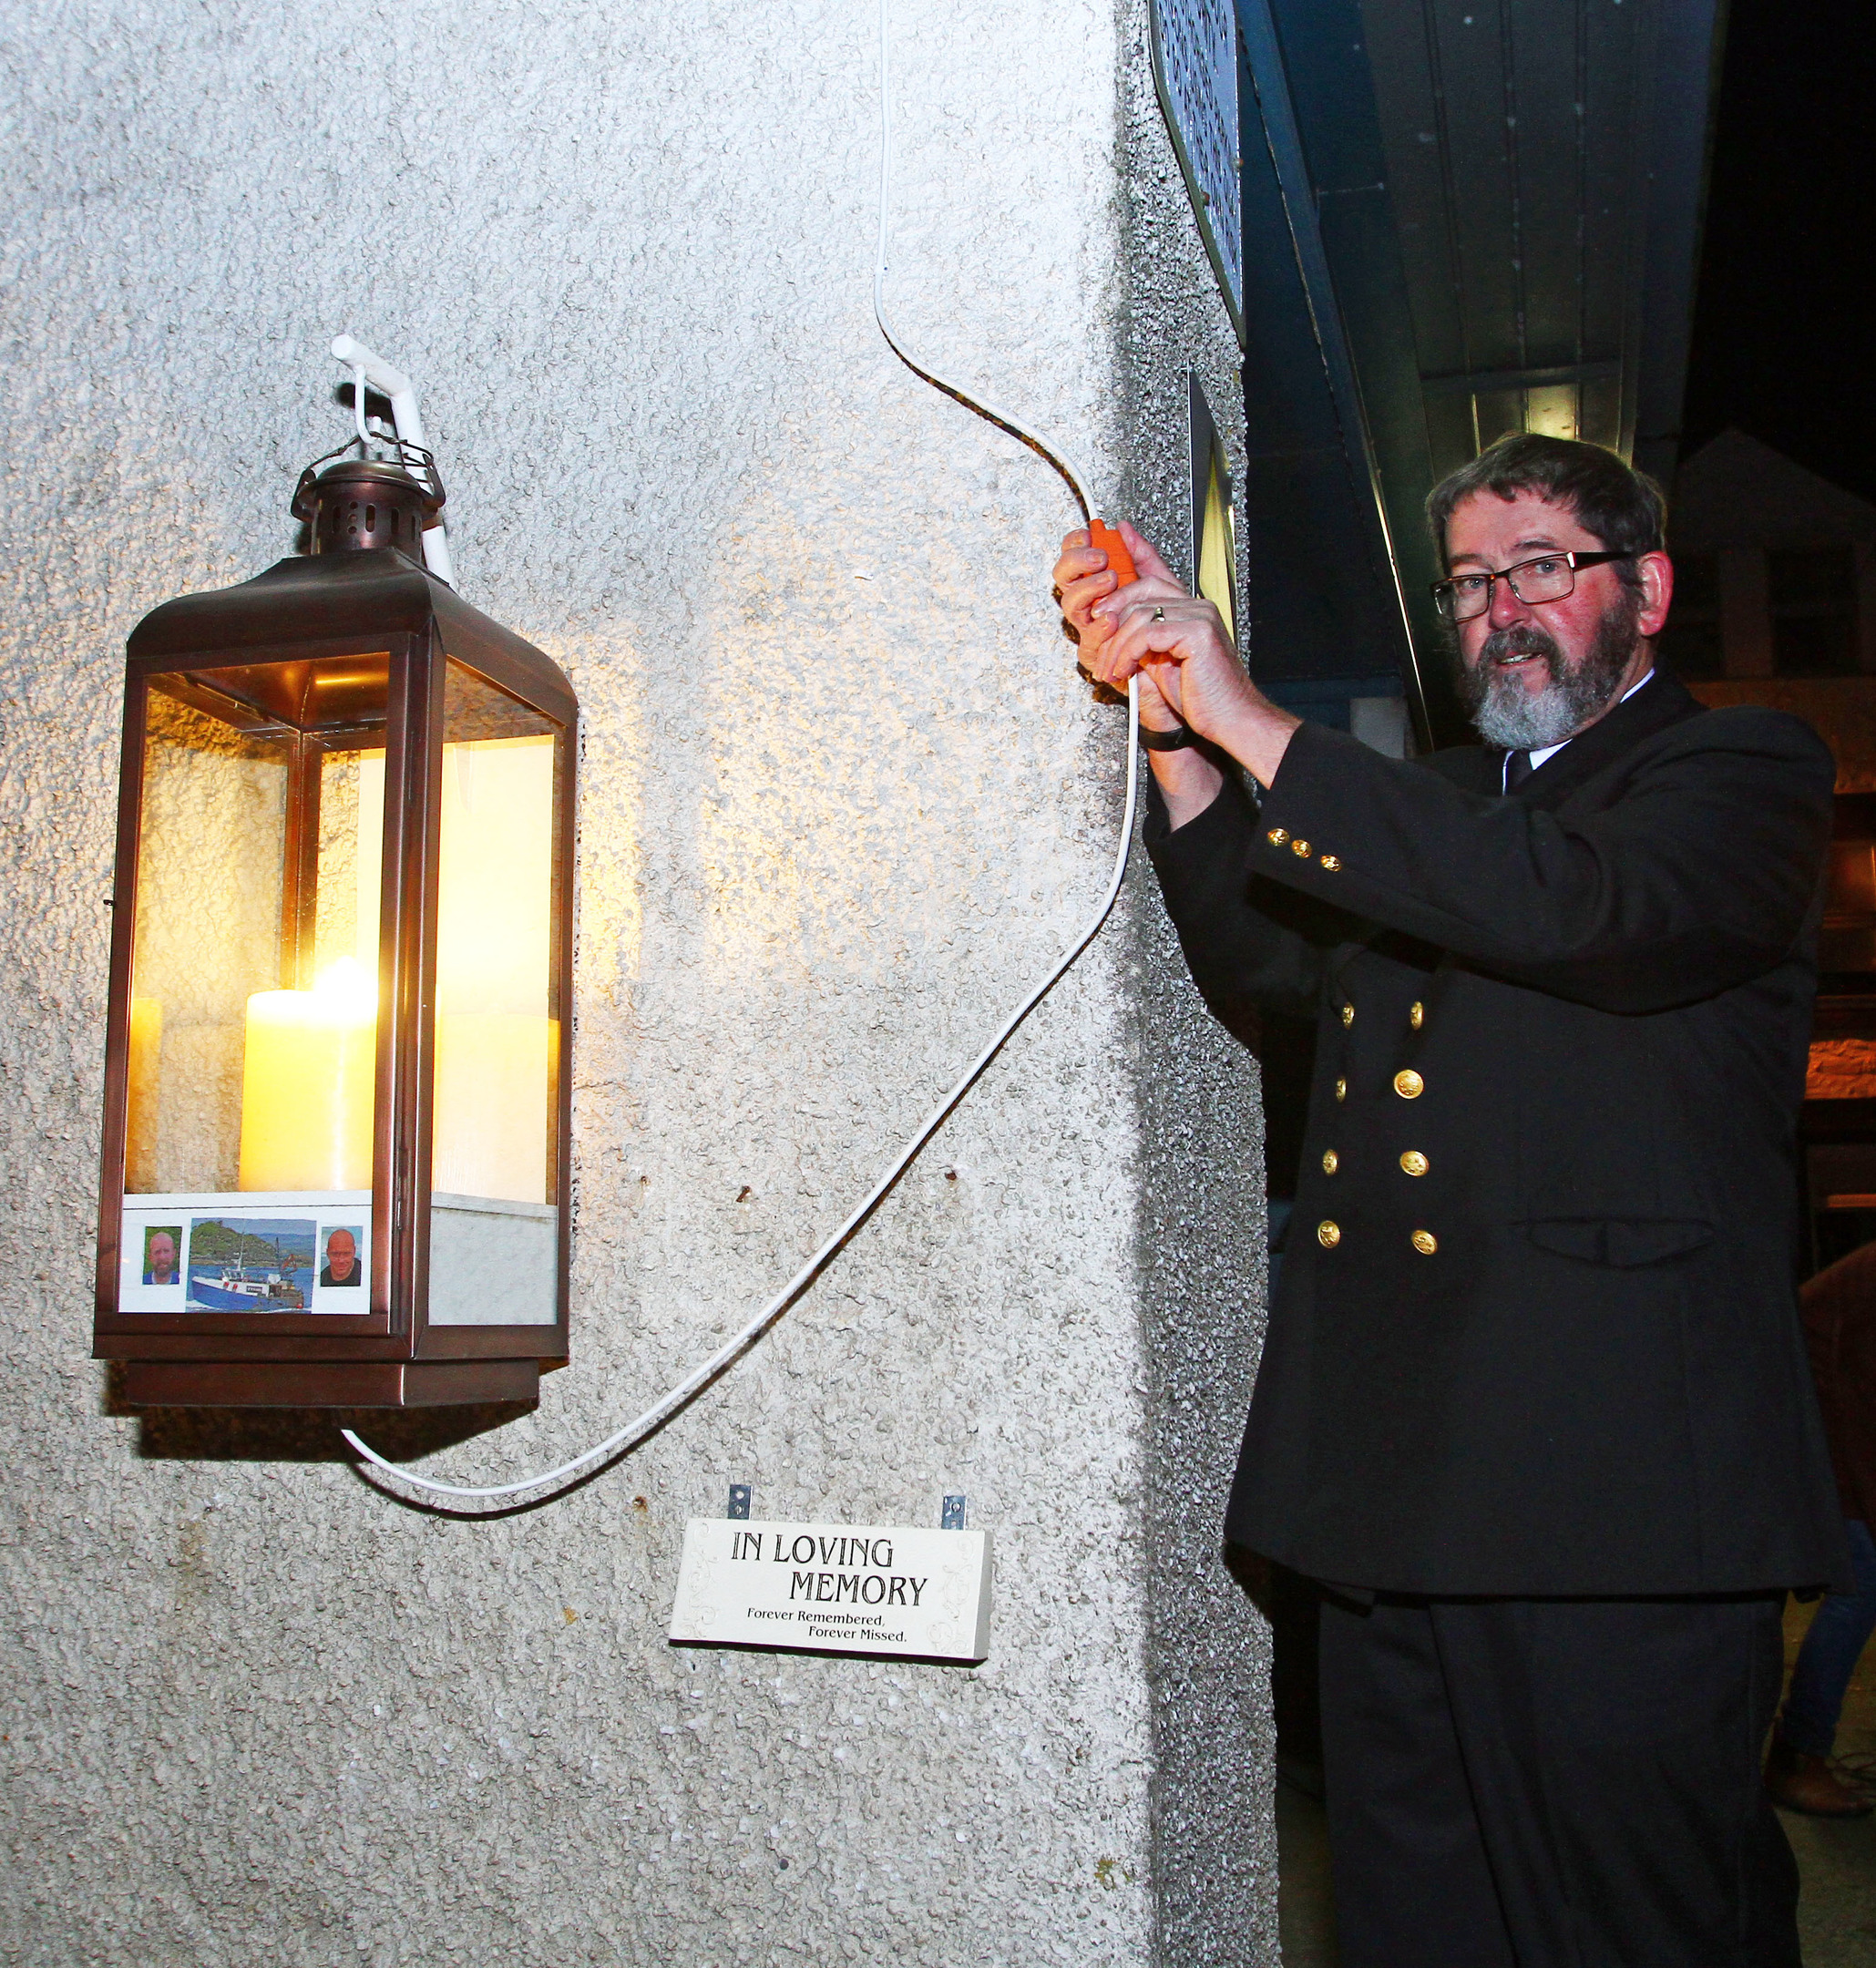 Matthew Ramsay, superintendent of the Fishermen's Mission performs the switching on of the candle at the vigil held on the quay in Tarbert.  Picture: Kevin McGlynn